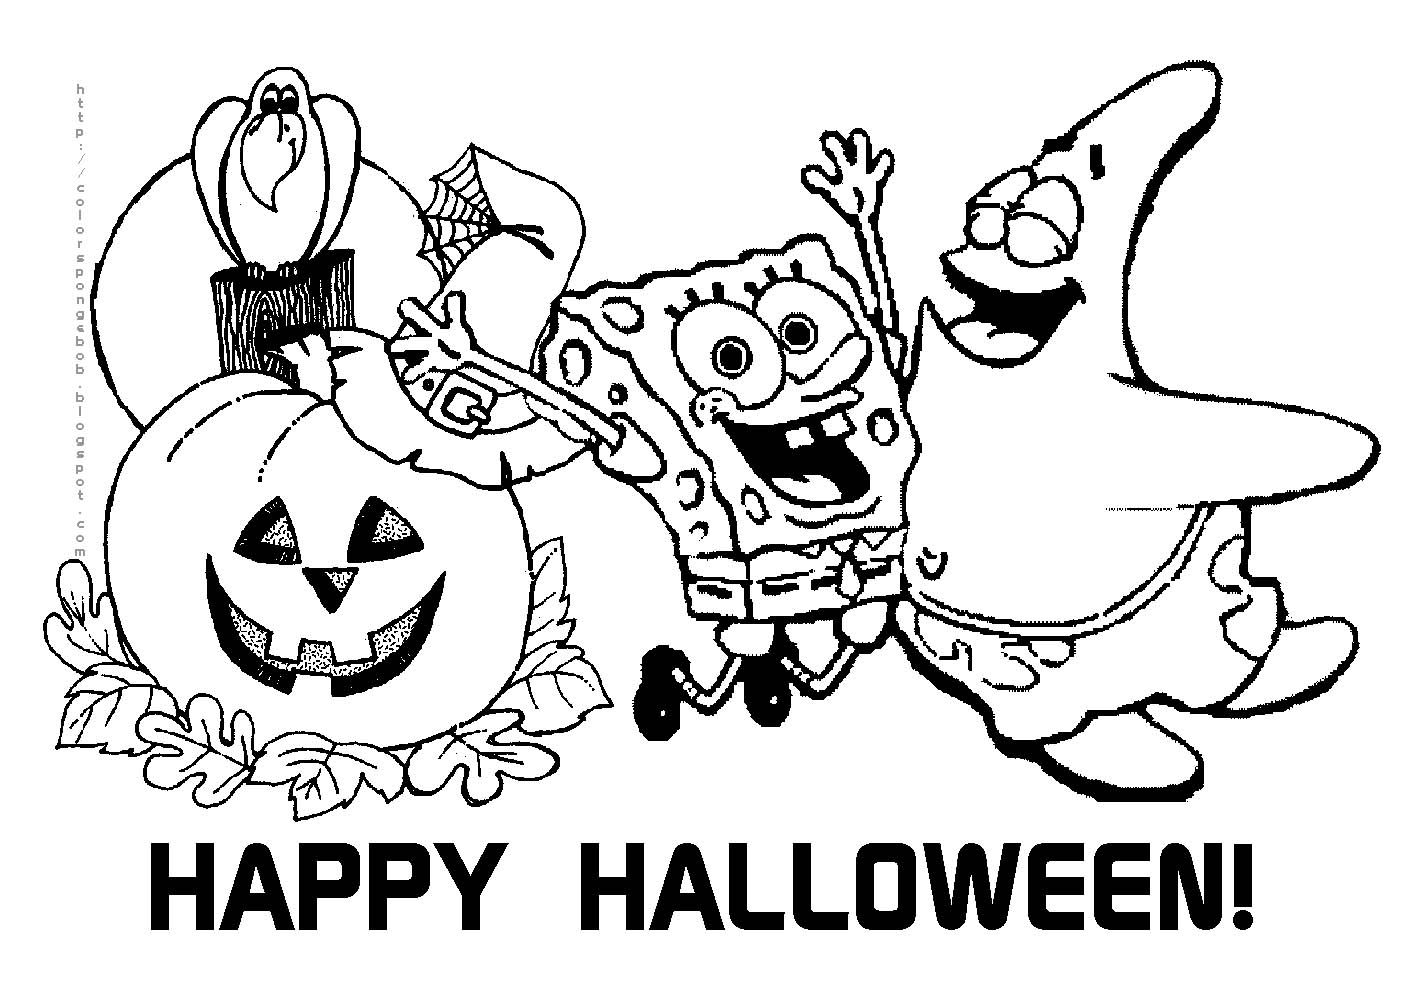 free halloween coloring book spongebob squarepants coloring sheets